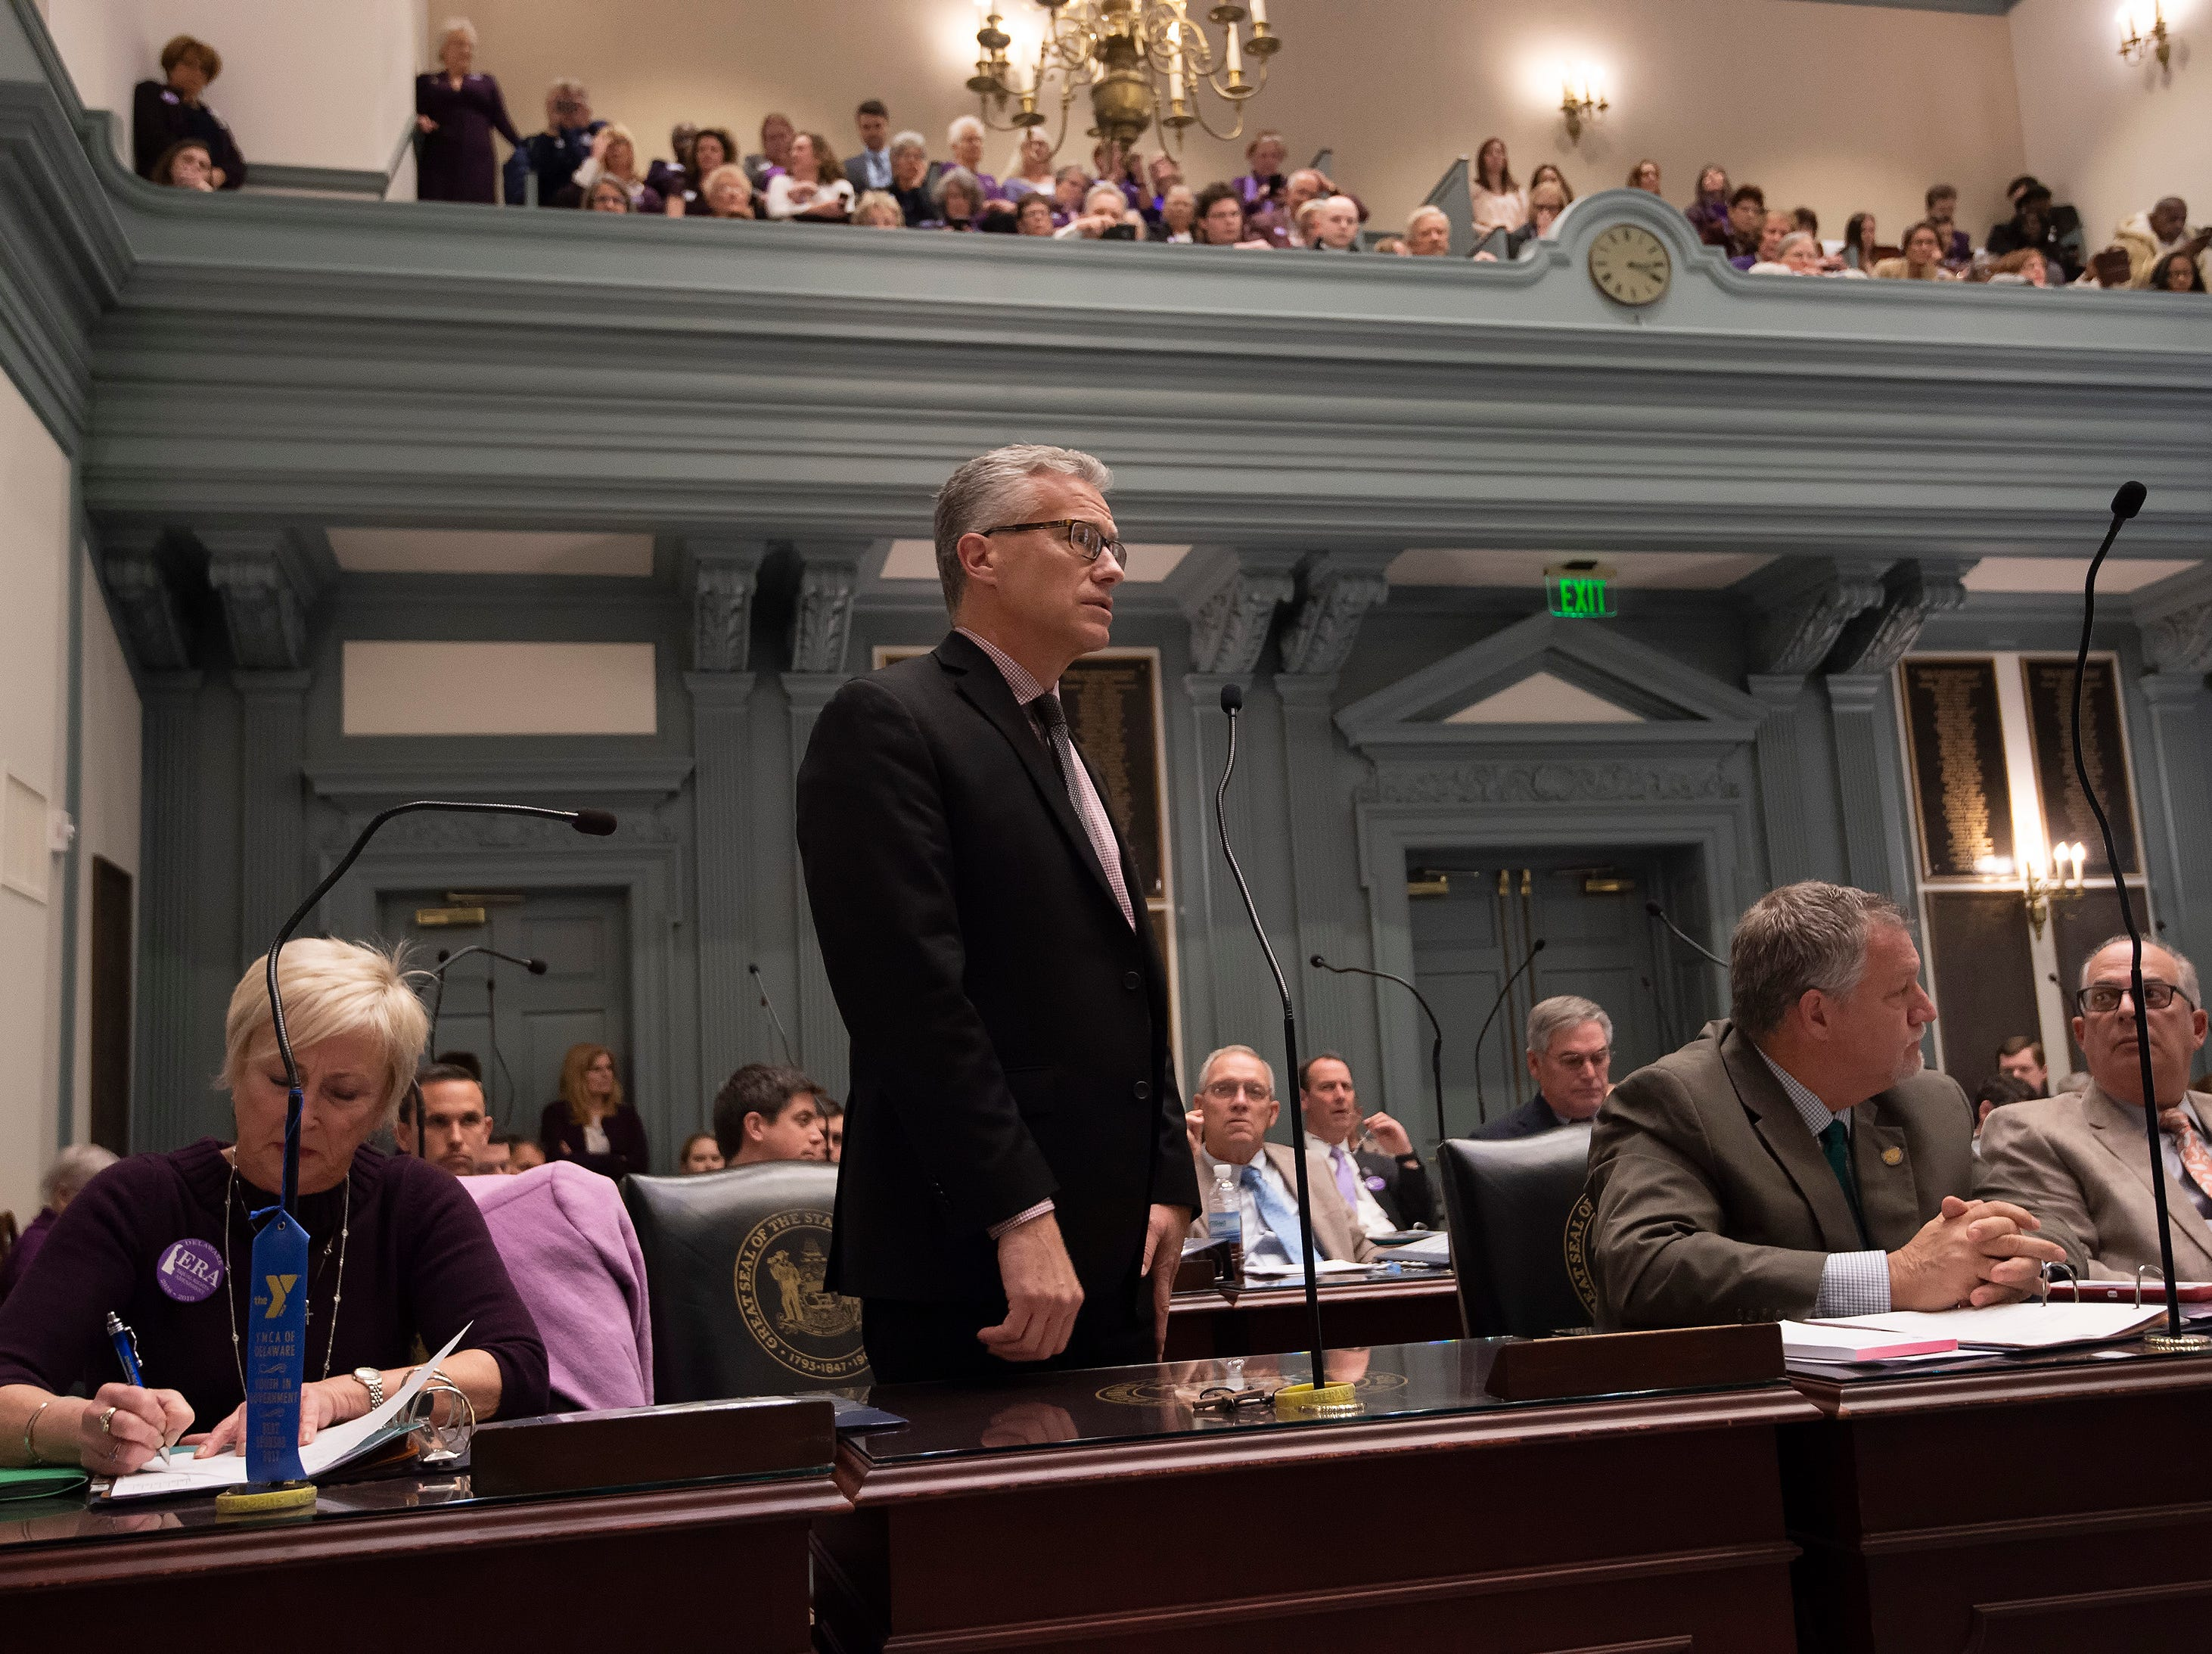 Lyndon D. Yearick, R-Camden/Wyoming gives his remarks against House Bill 1, equal rights amendment to the state constitution, during session at Legislative Hall in Dover.